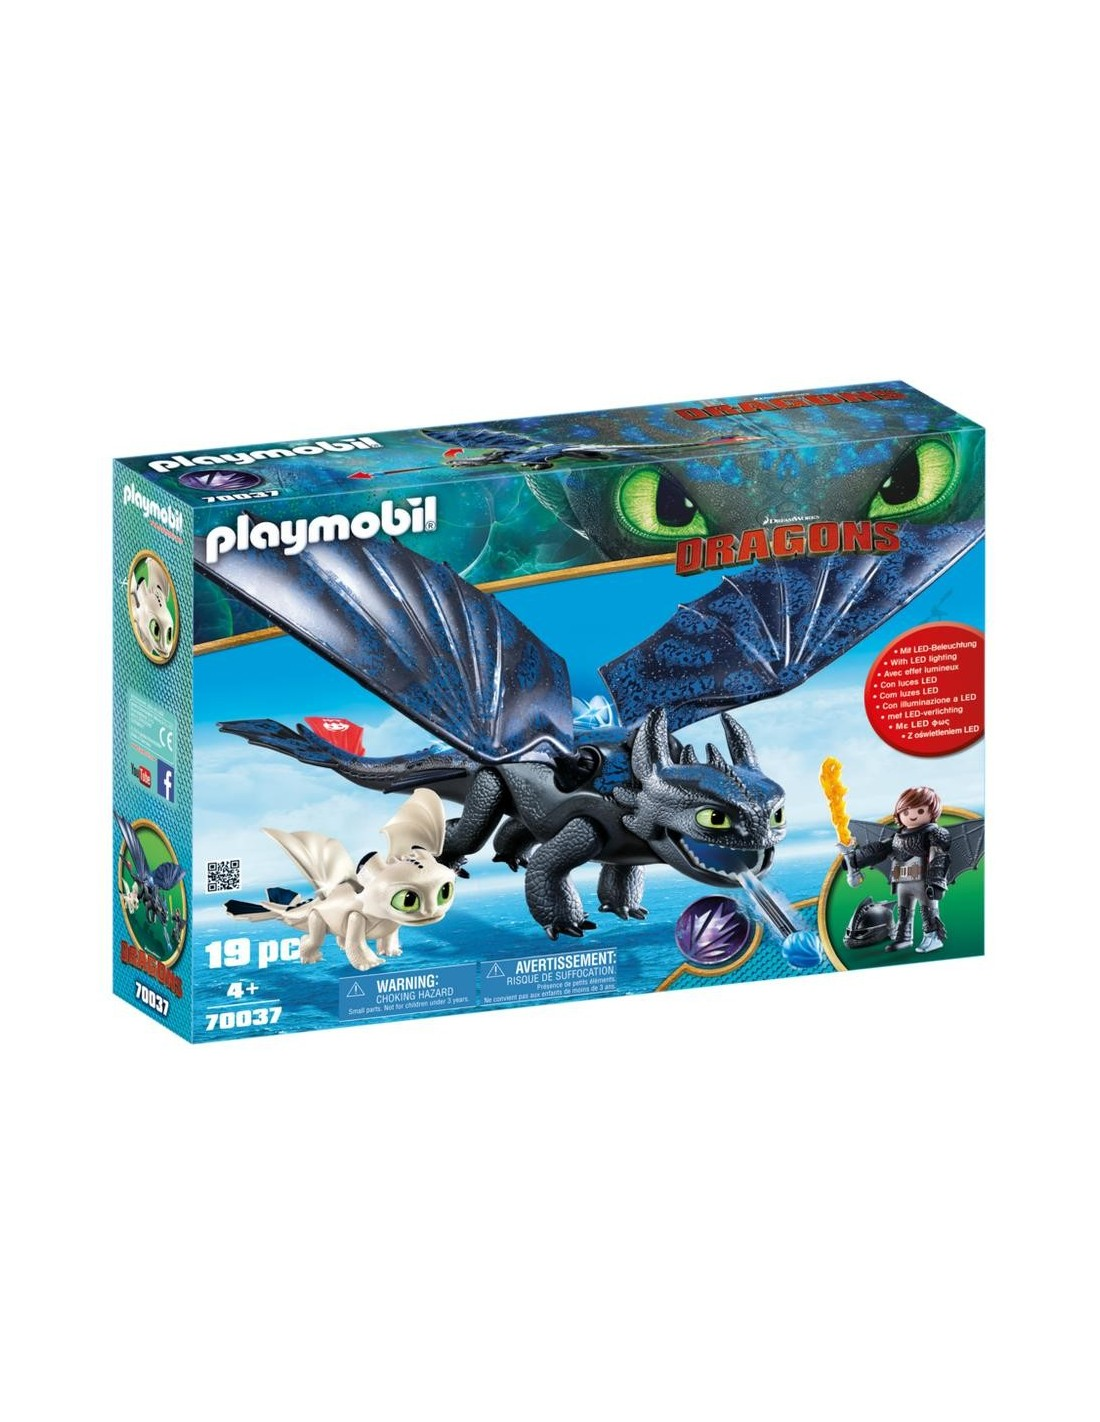 Playmobil How to Train your Dragon Hiccup and Toothless